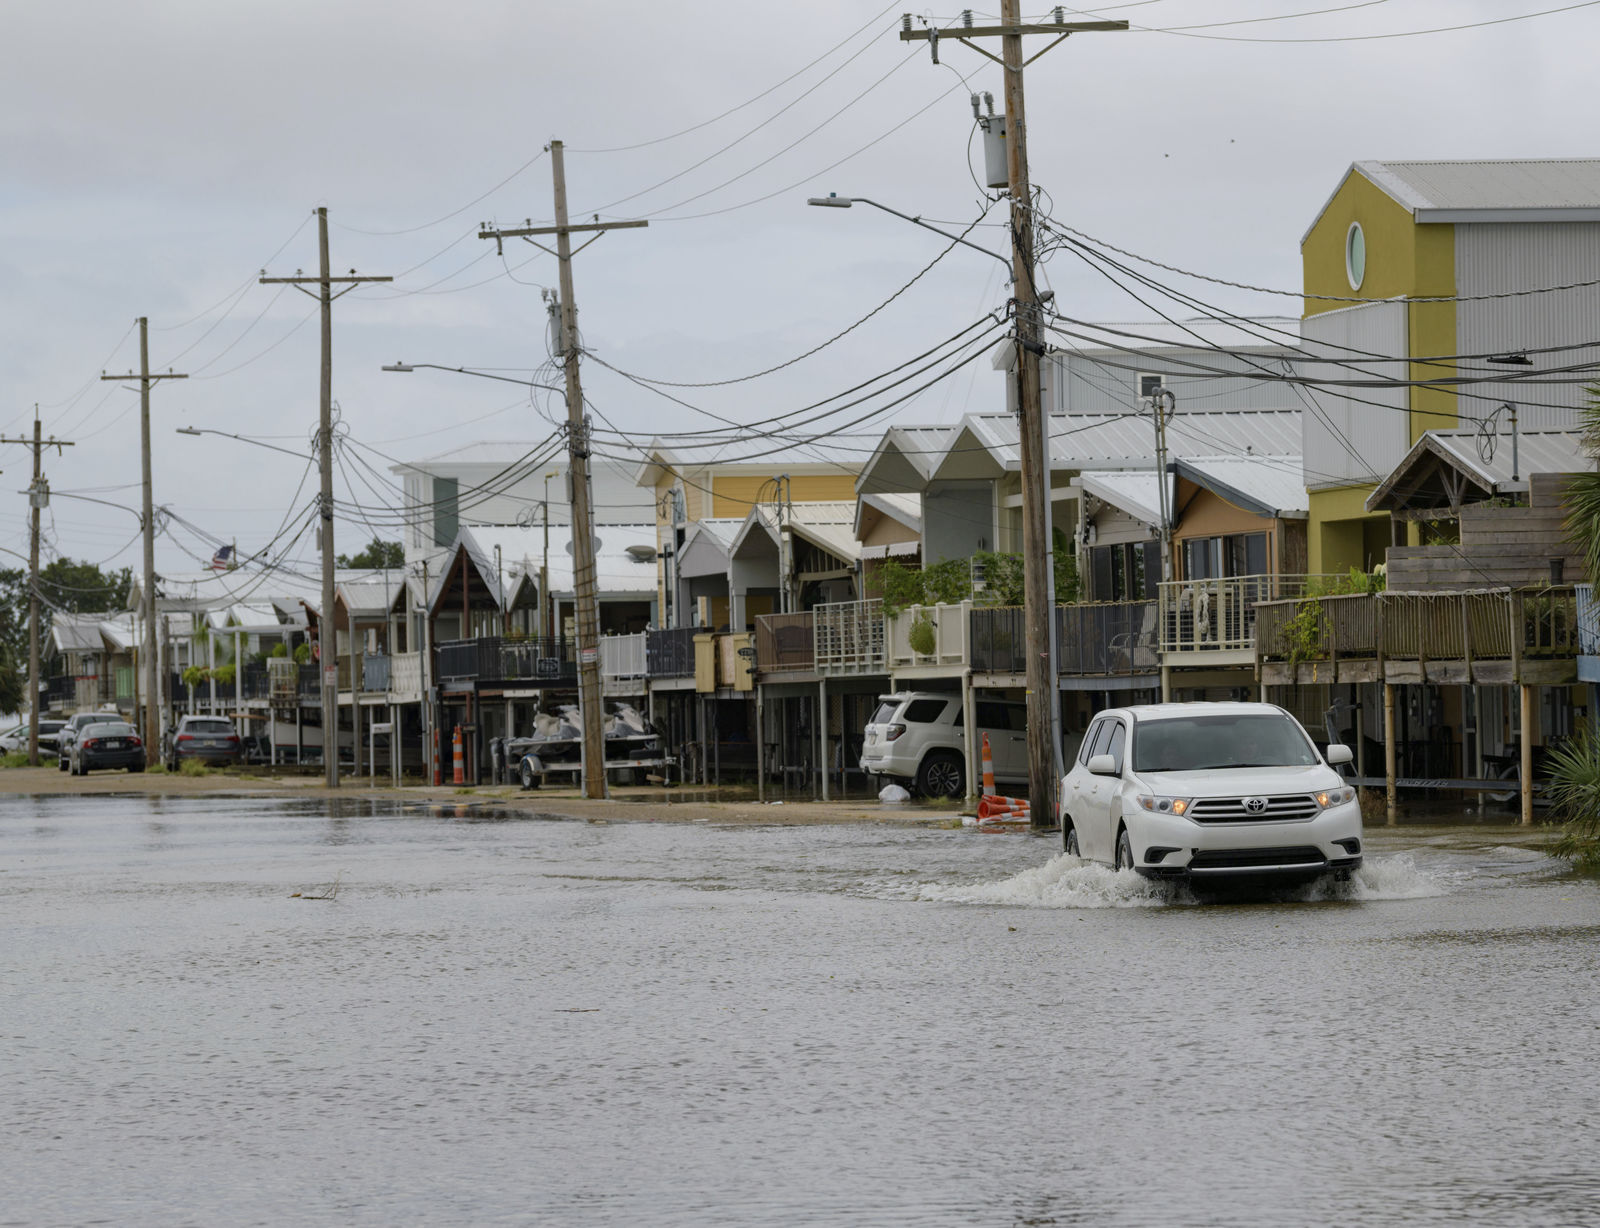 An SUV travels down Breakwater Drive in New Orleans, La., Friday, July 12, 2019, near the Orleans Marina as water moves in from Lake Pontchartrain from the storm surge from Tropical Storm Barry in the Gulf of Mexico. The area is behind a flood wall that protects the rest of the city. (AP Photo/Matthew Hinton)